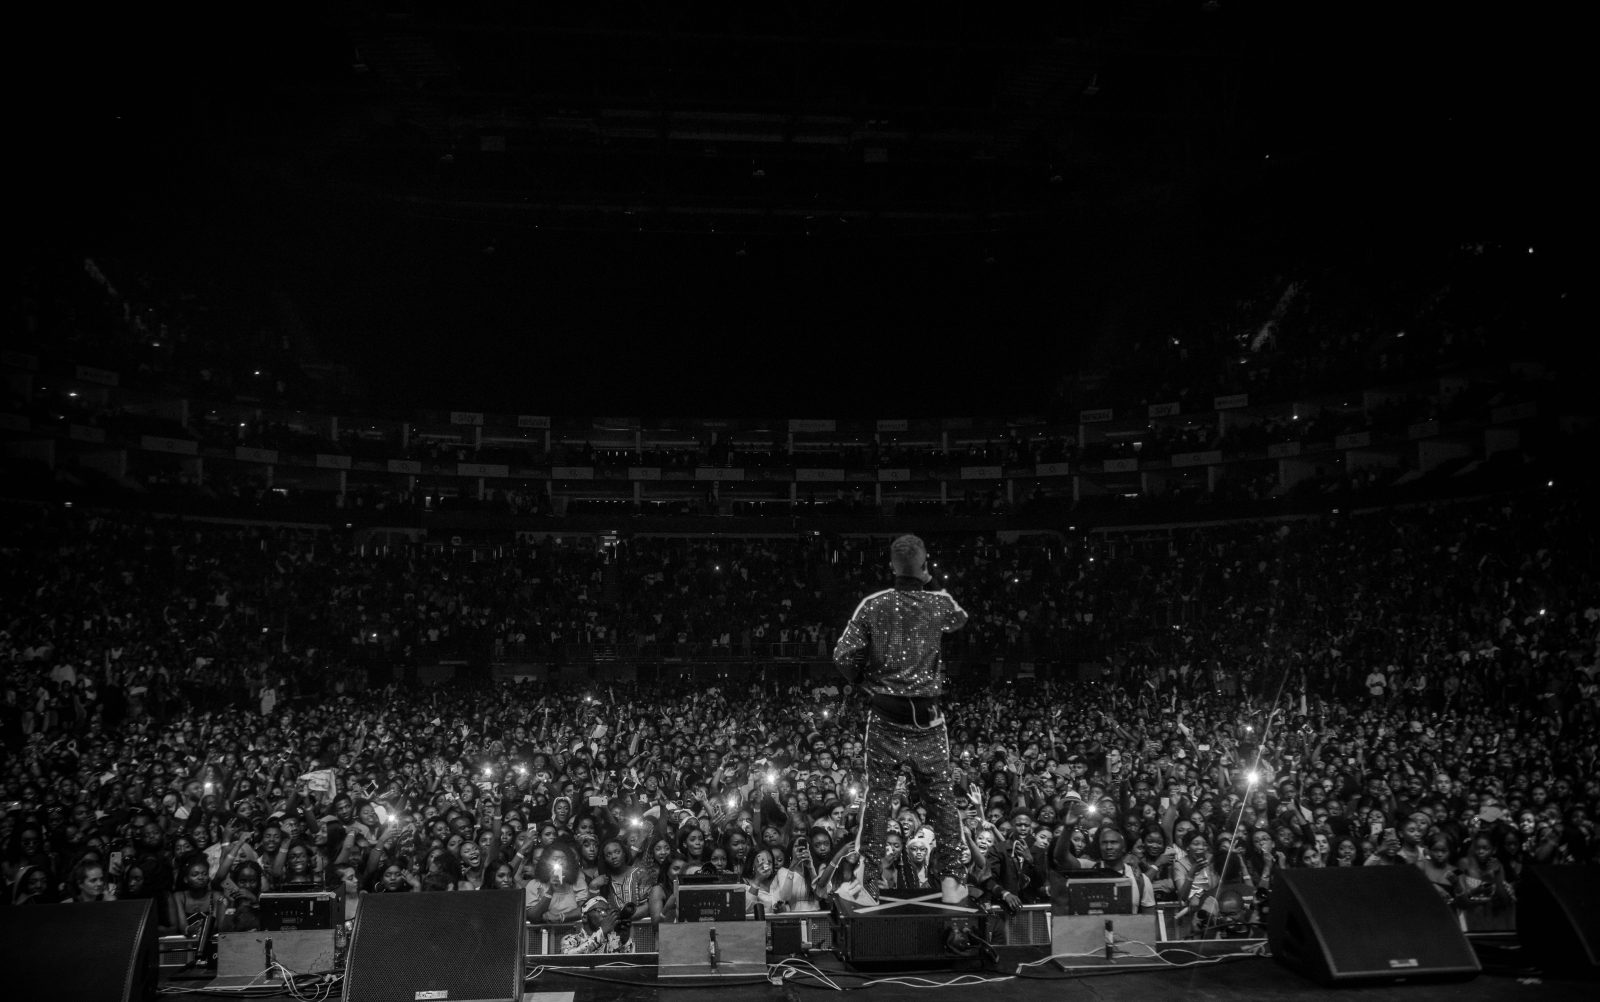 o2 Arena, London, United Kingdom. 26th May 2018. Wizkid performs on stage during AFROREPUBLIK festival at The O2 Arena. Michael Tubi / Alamy Live News